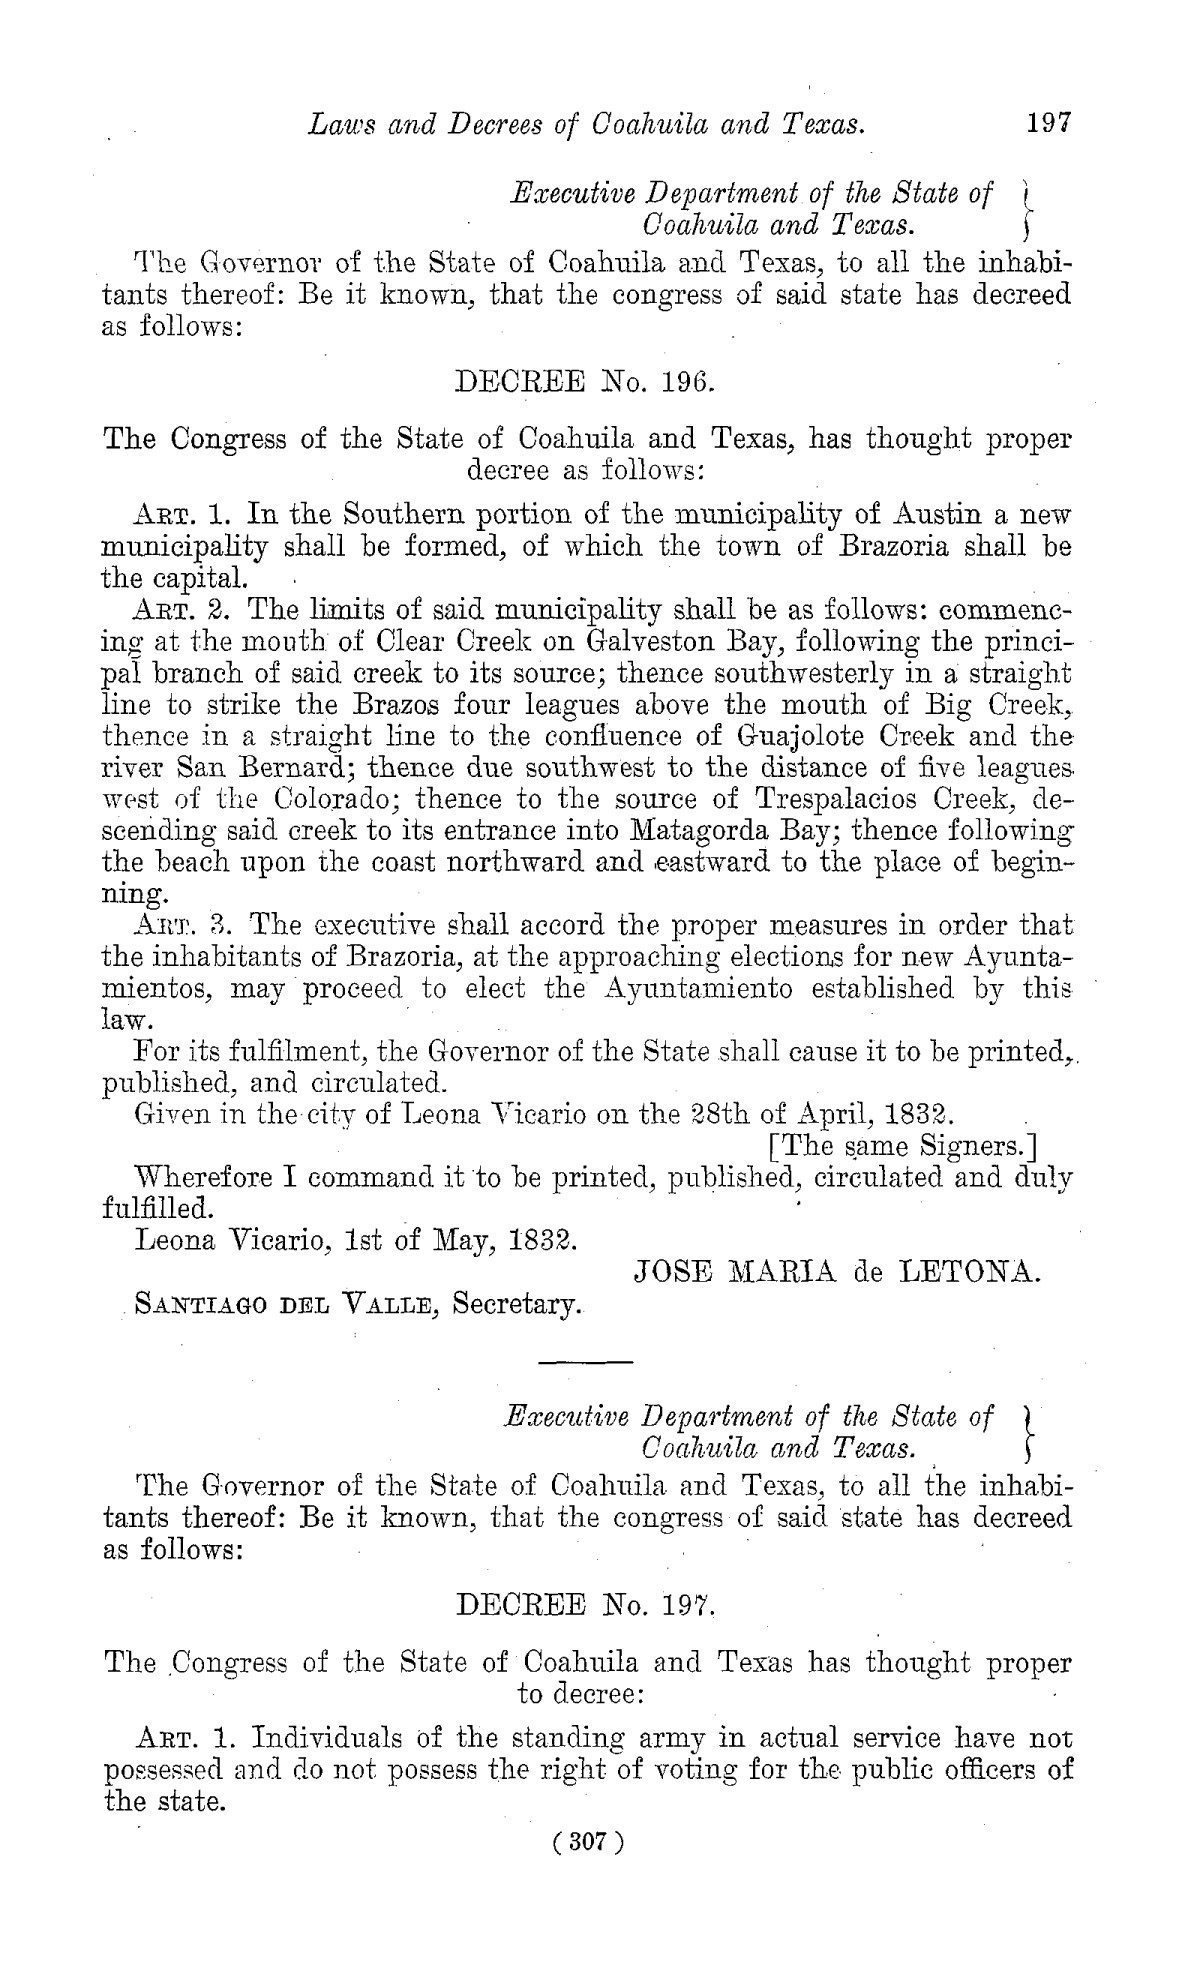 The Laws of Texas, 1822-1897 Volume 1                                                                                                      307